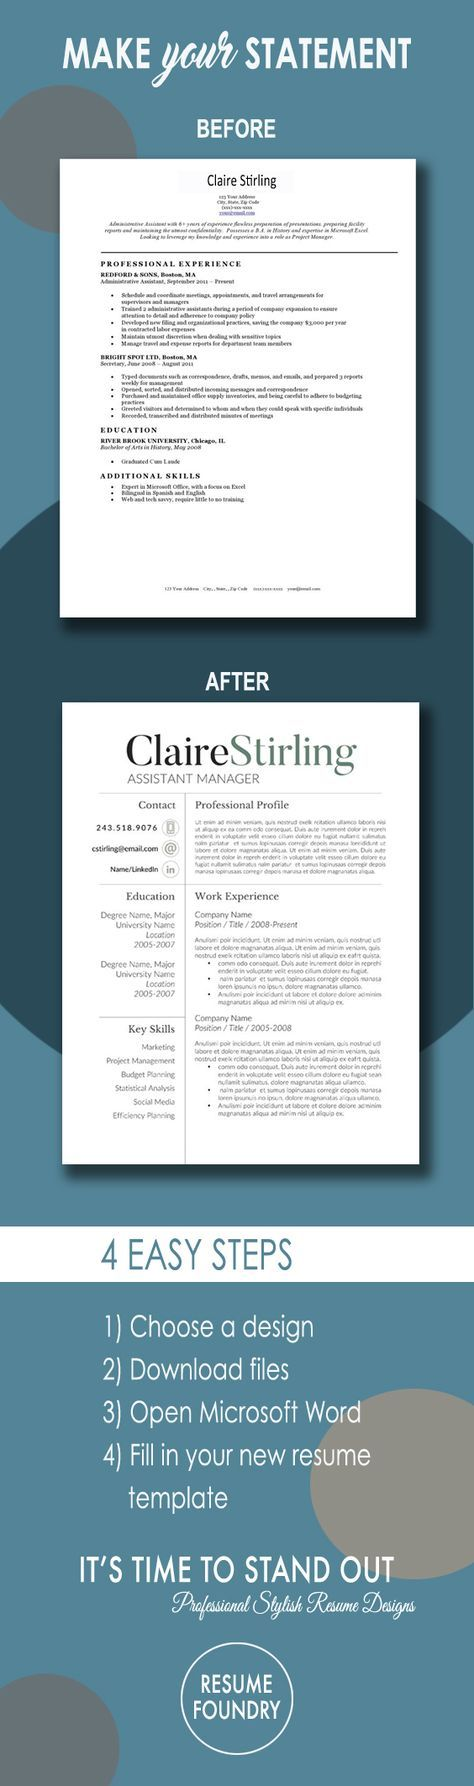 It is so easy to update your resume. Just choose a template, open Microsoft Word, add your info and send!